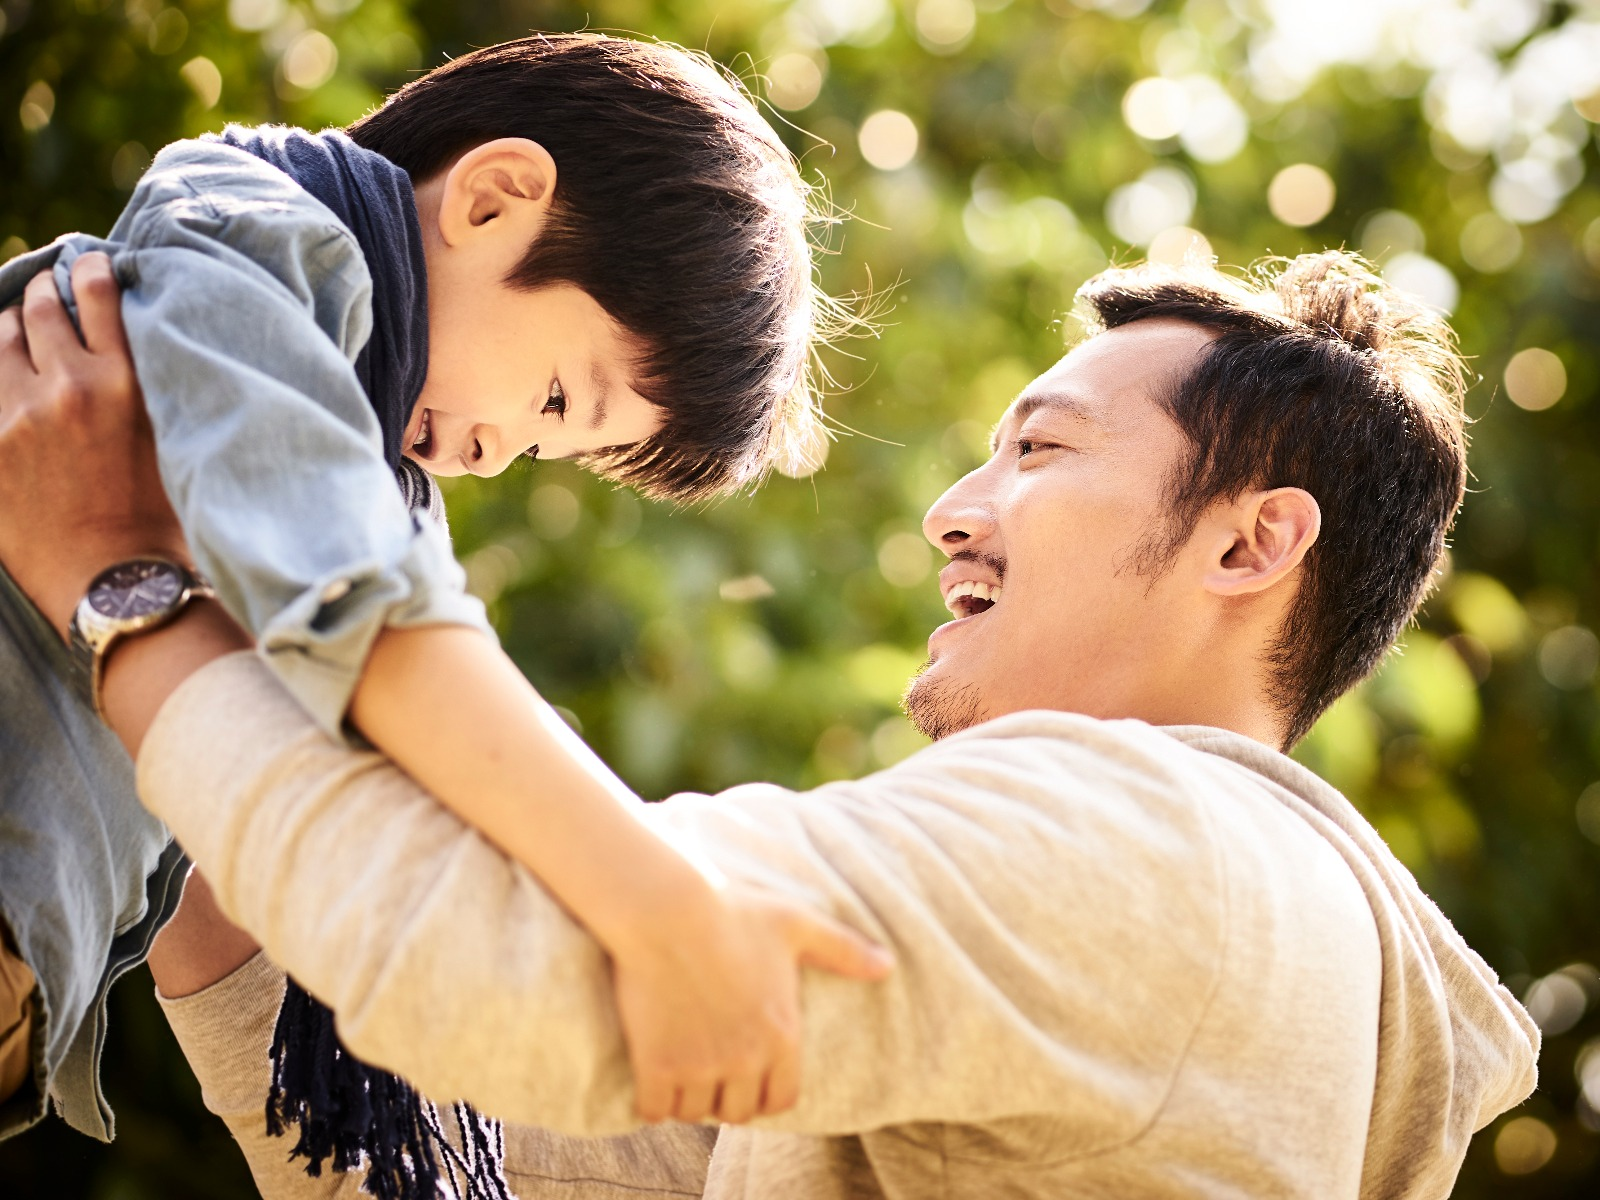 Father holding up his young son outside, both of them smiling and having fun